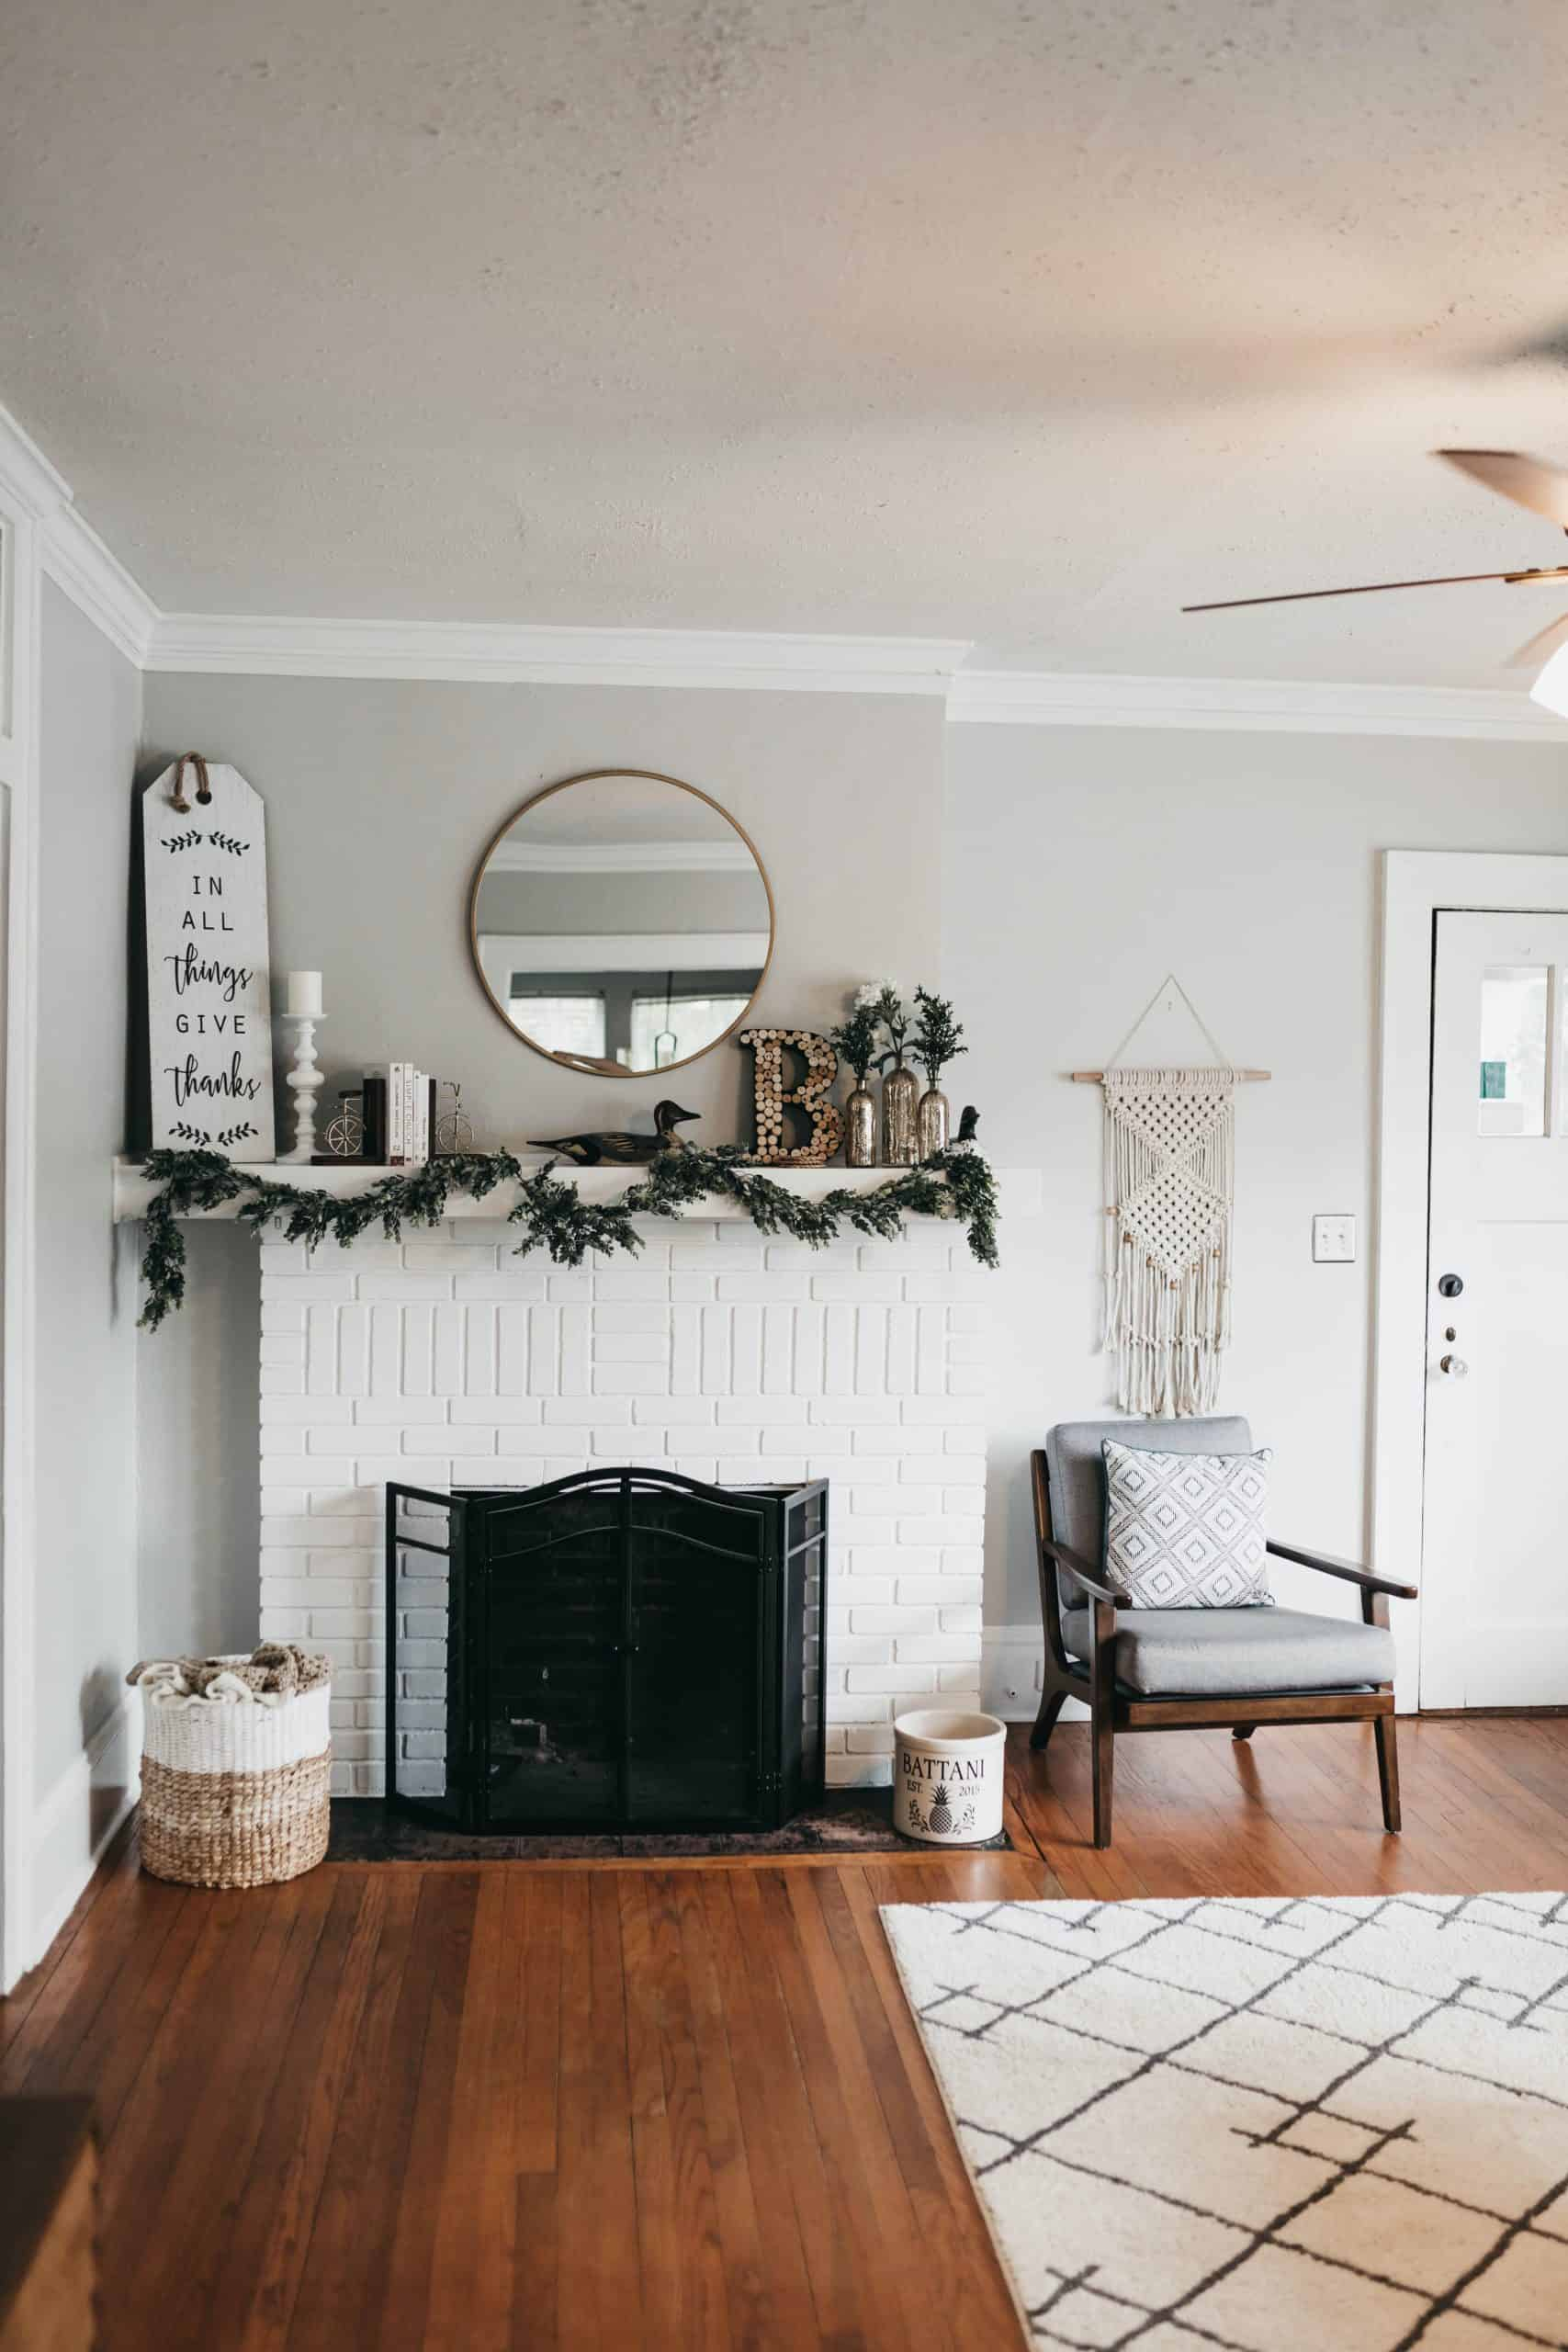 Where To Find Simple Home Decor Ideas